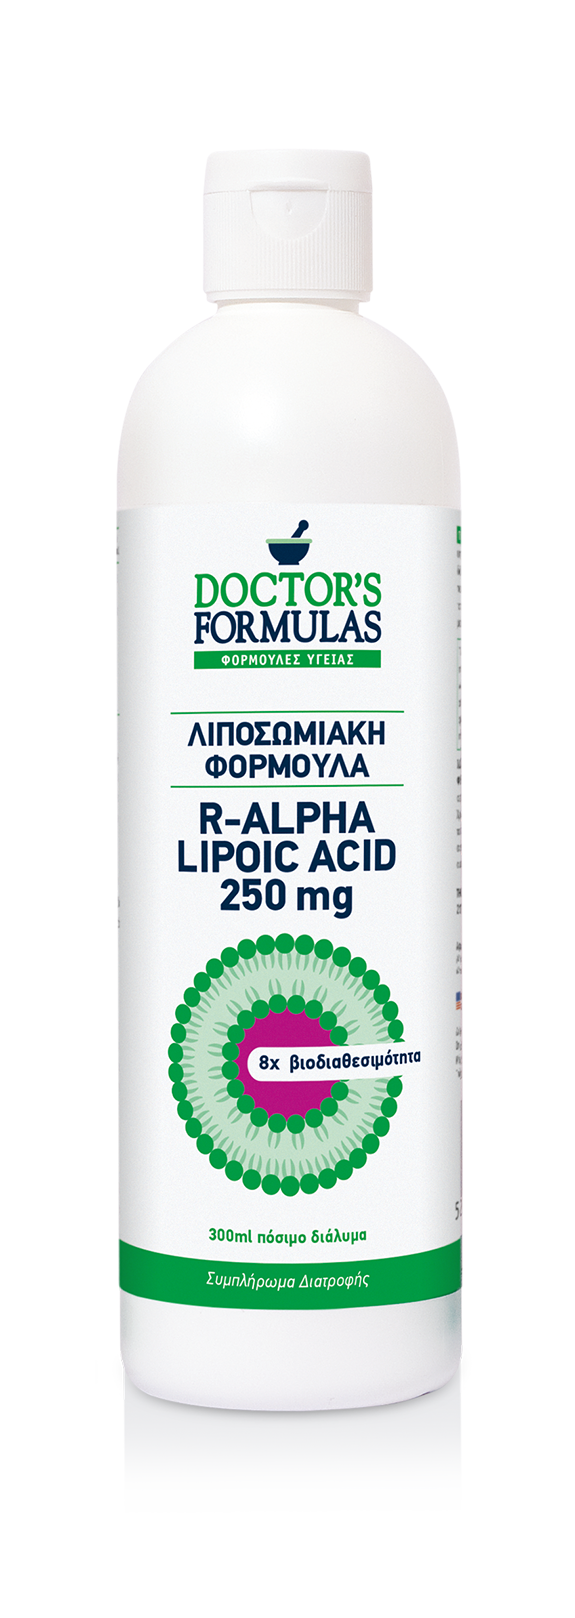 Εικόνα R-ALPHA LIPOIC ACID 250mg